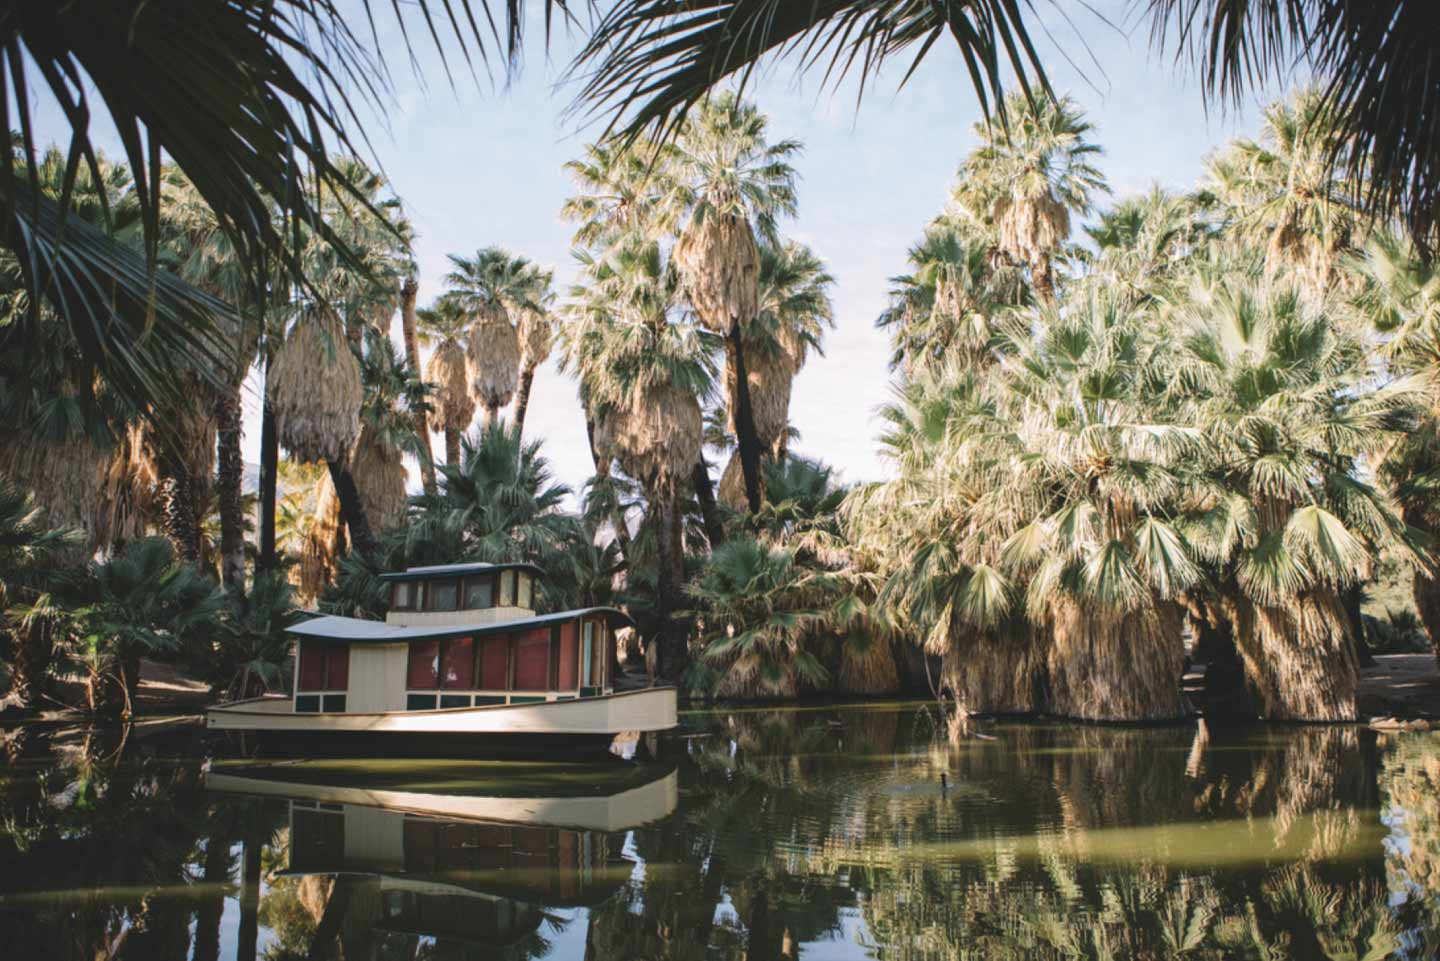 The Oasis of Mara, with a houseboat floating in the center